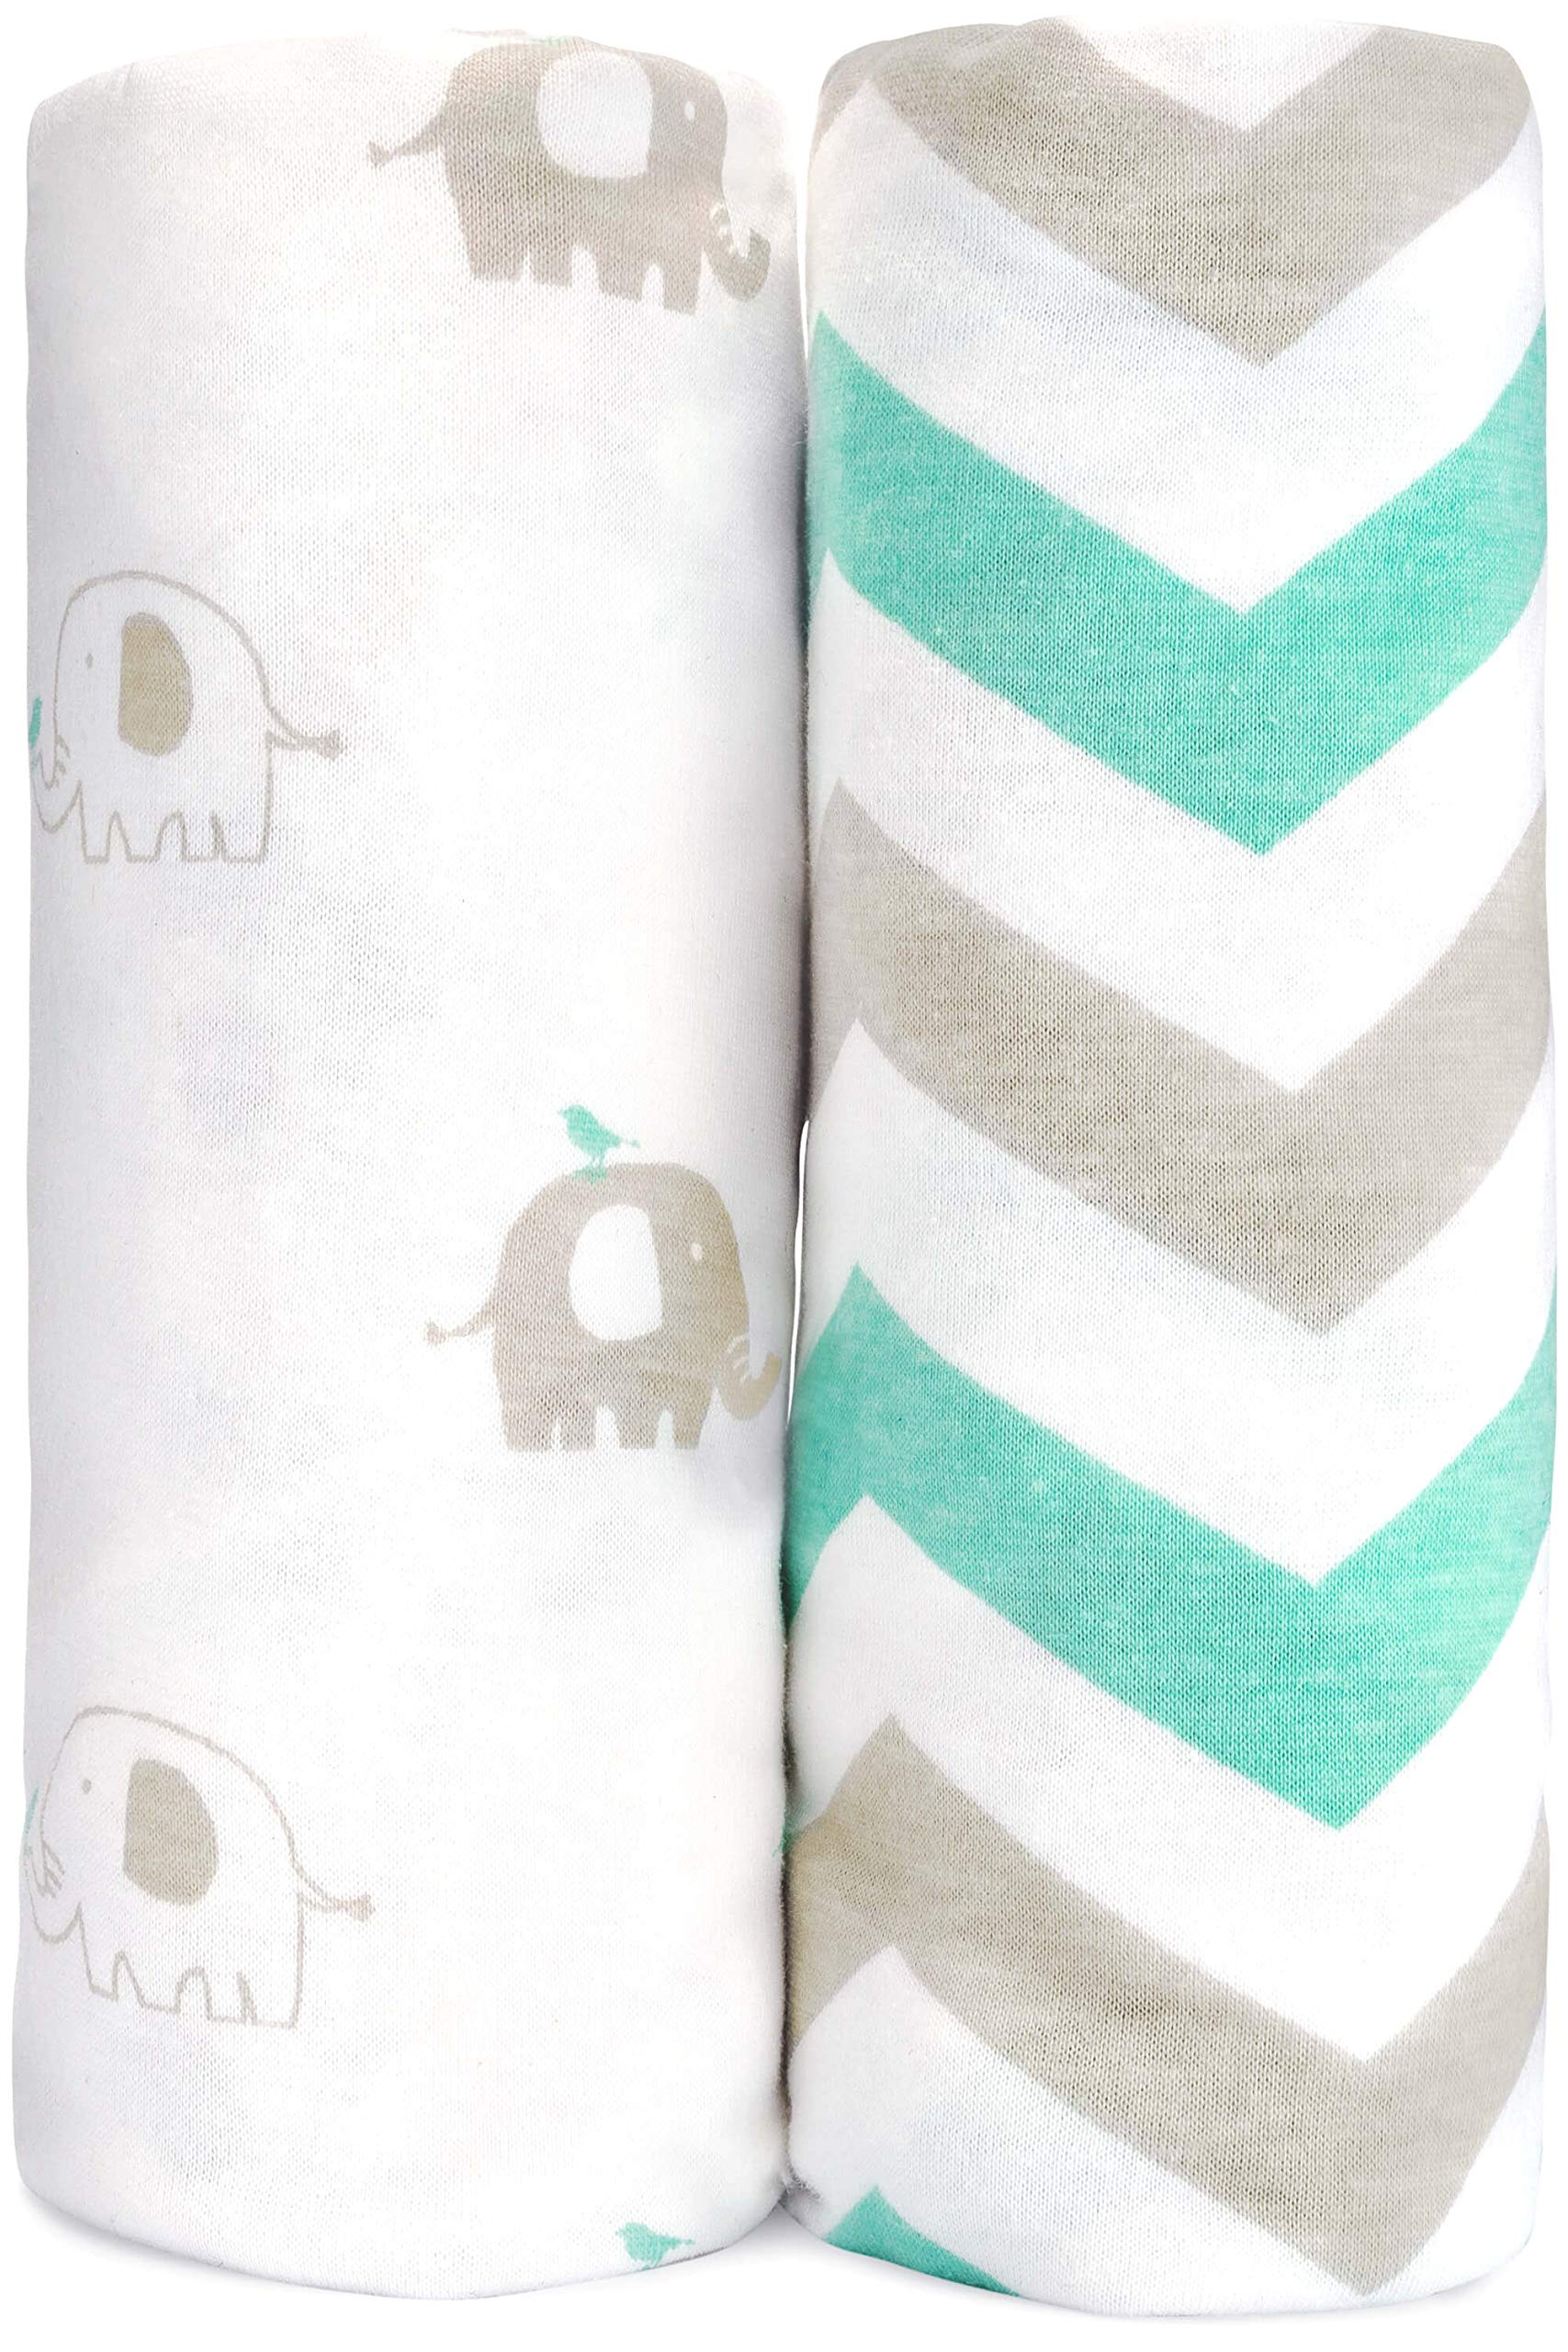 Cuddly Cubs Baby Crib Sheets Boy Girl 2 Pack | Fitted Crib Mattress Sheets | Toddler Bed Sheet | Jersey Cotton Elephant Crib Sheet | Grey White Mint by Cuddly Cubs